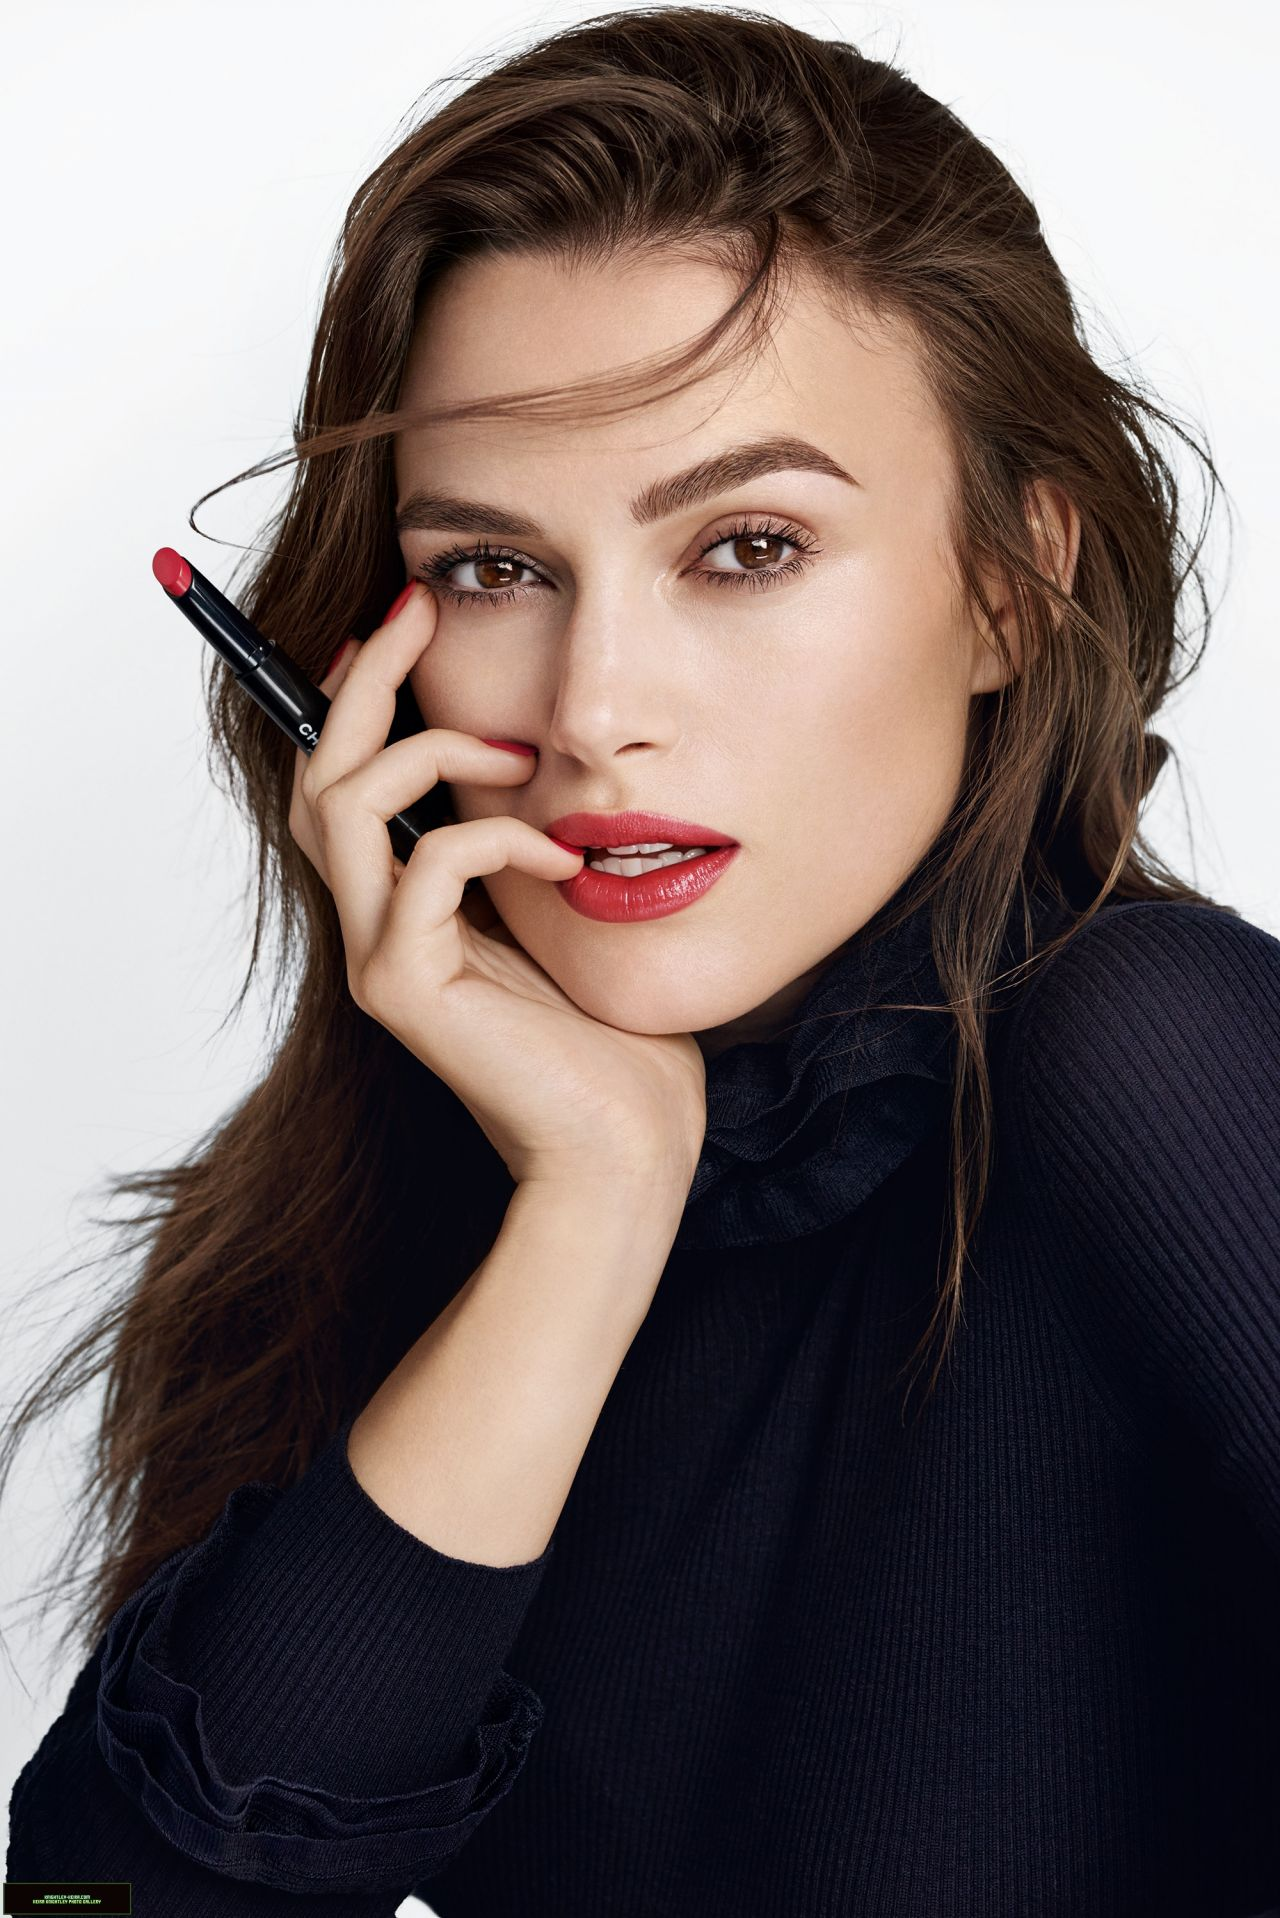 Keira knightley photo shoot does not